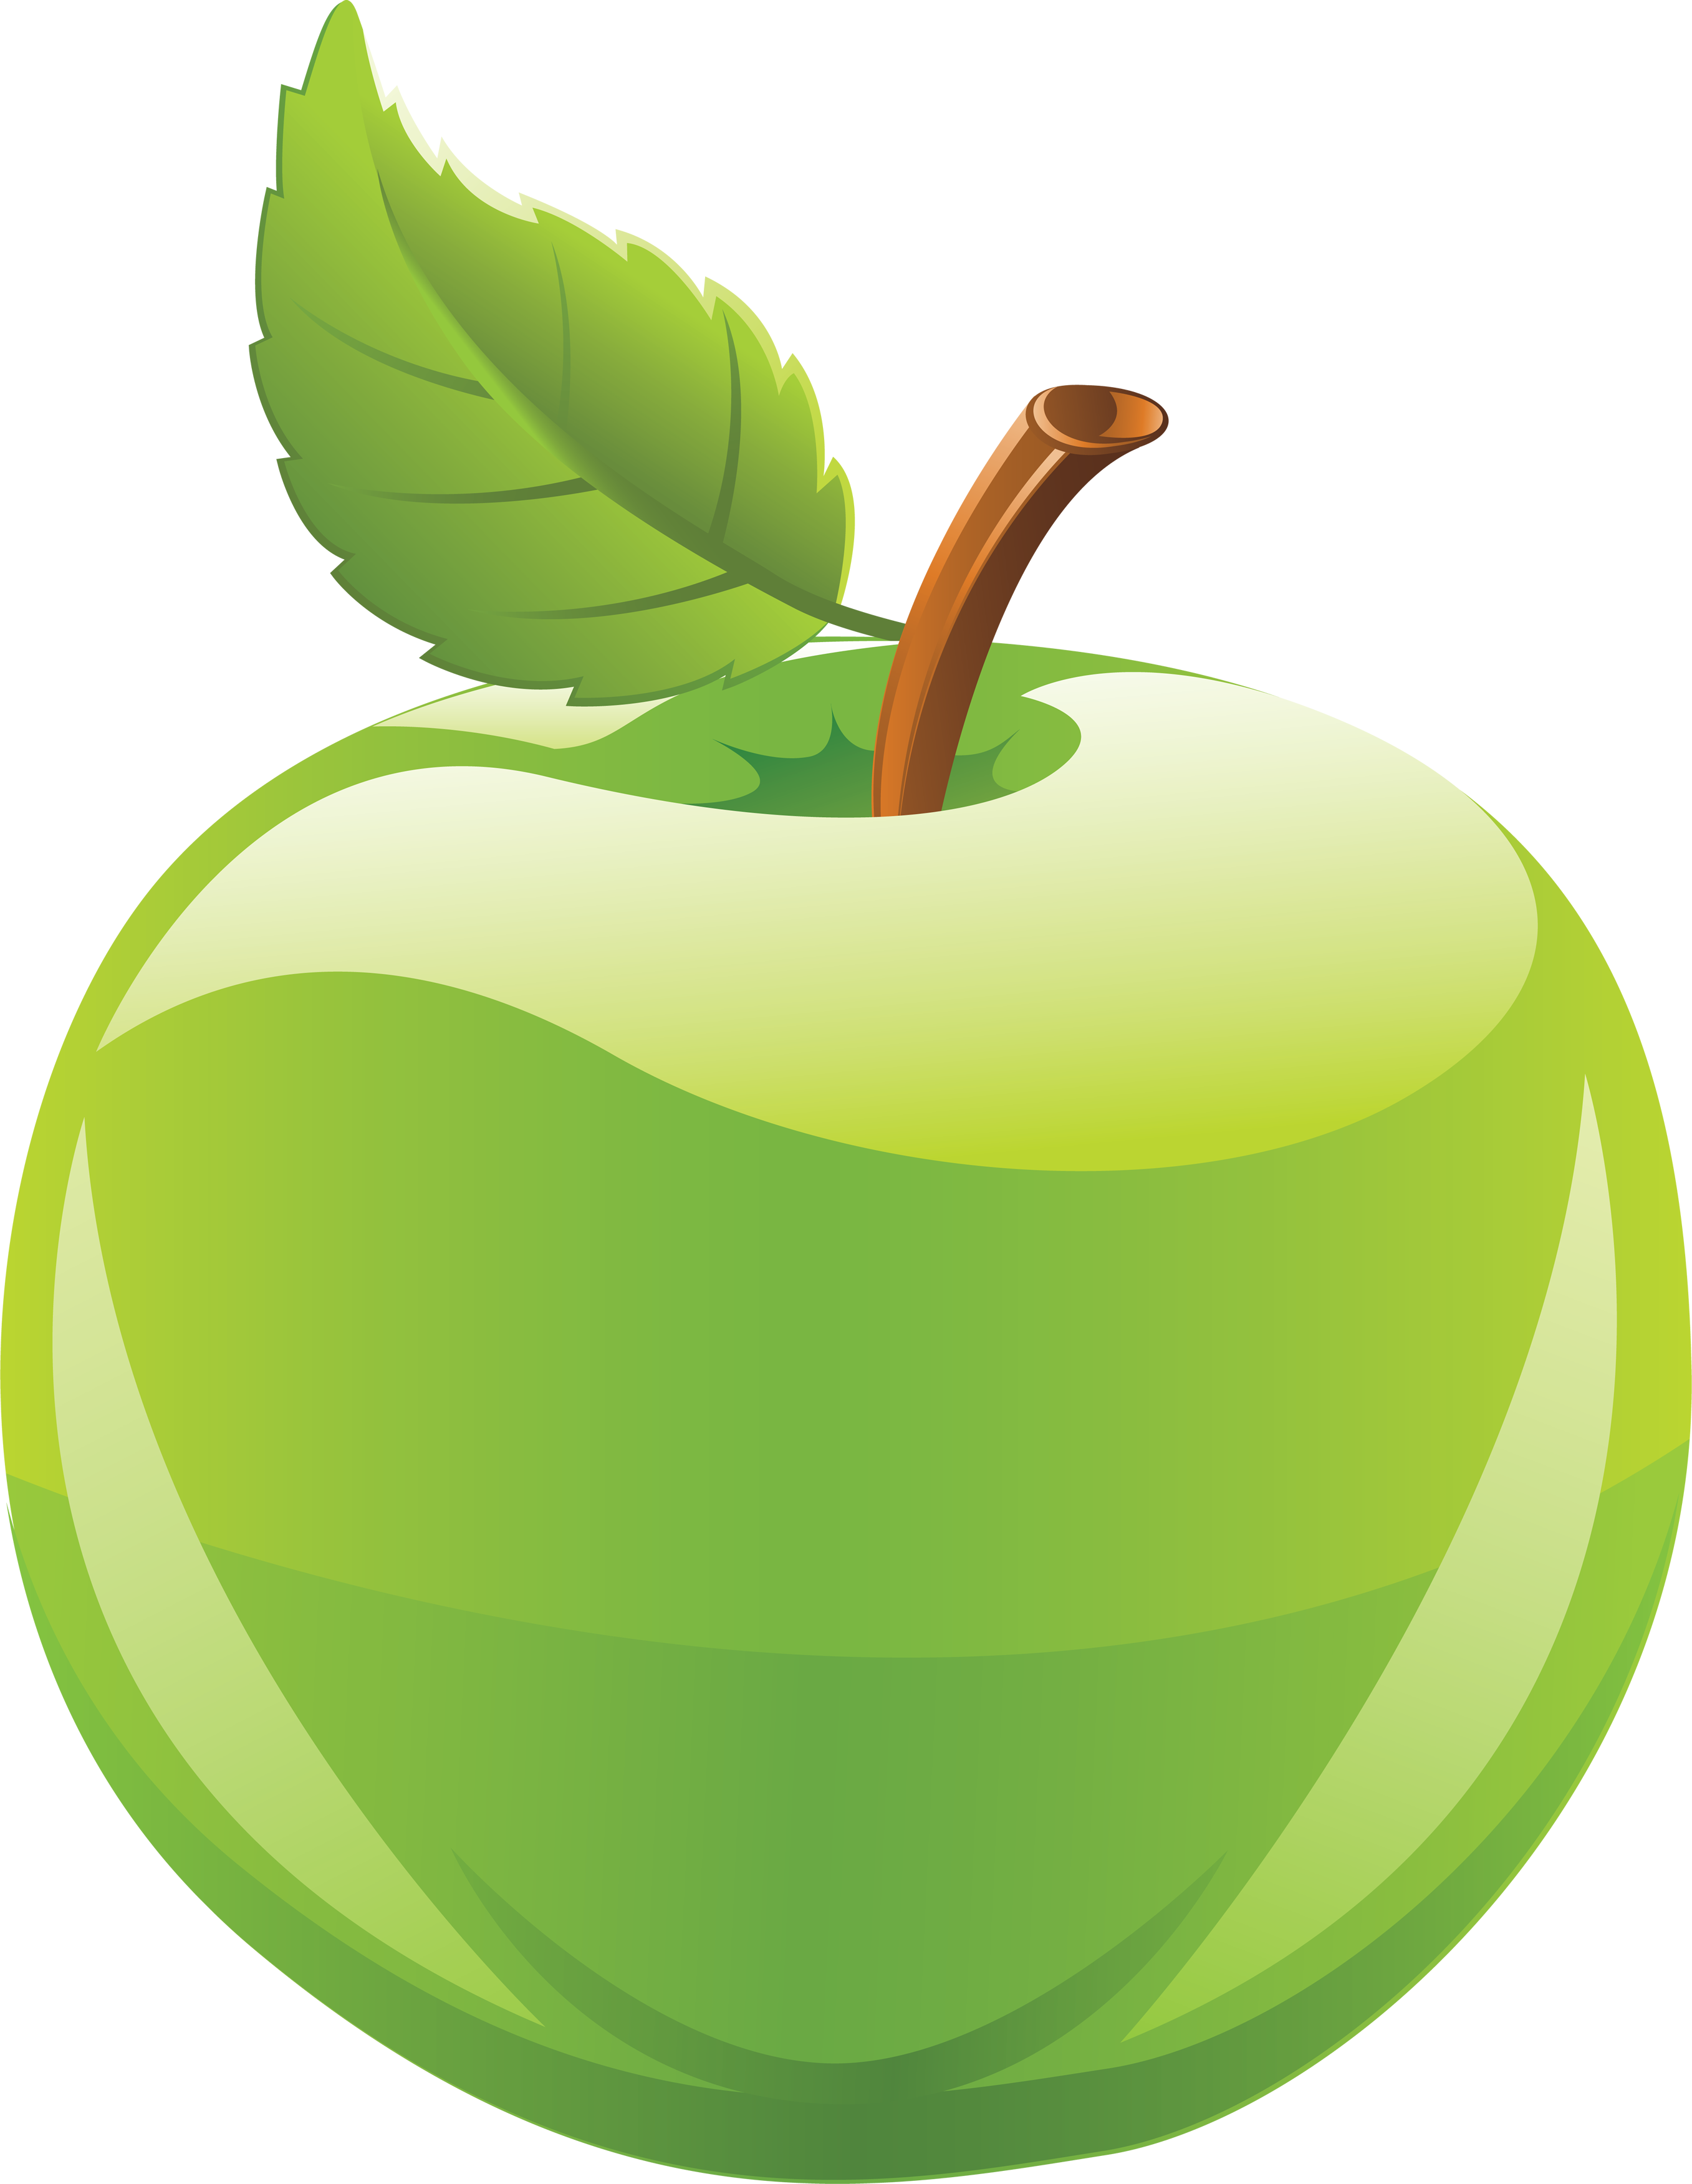 apple clipart for kids at getdrawings com free for personal use